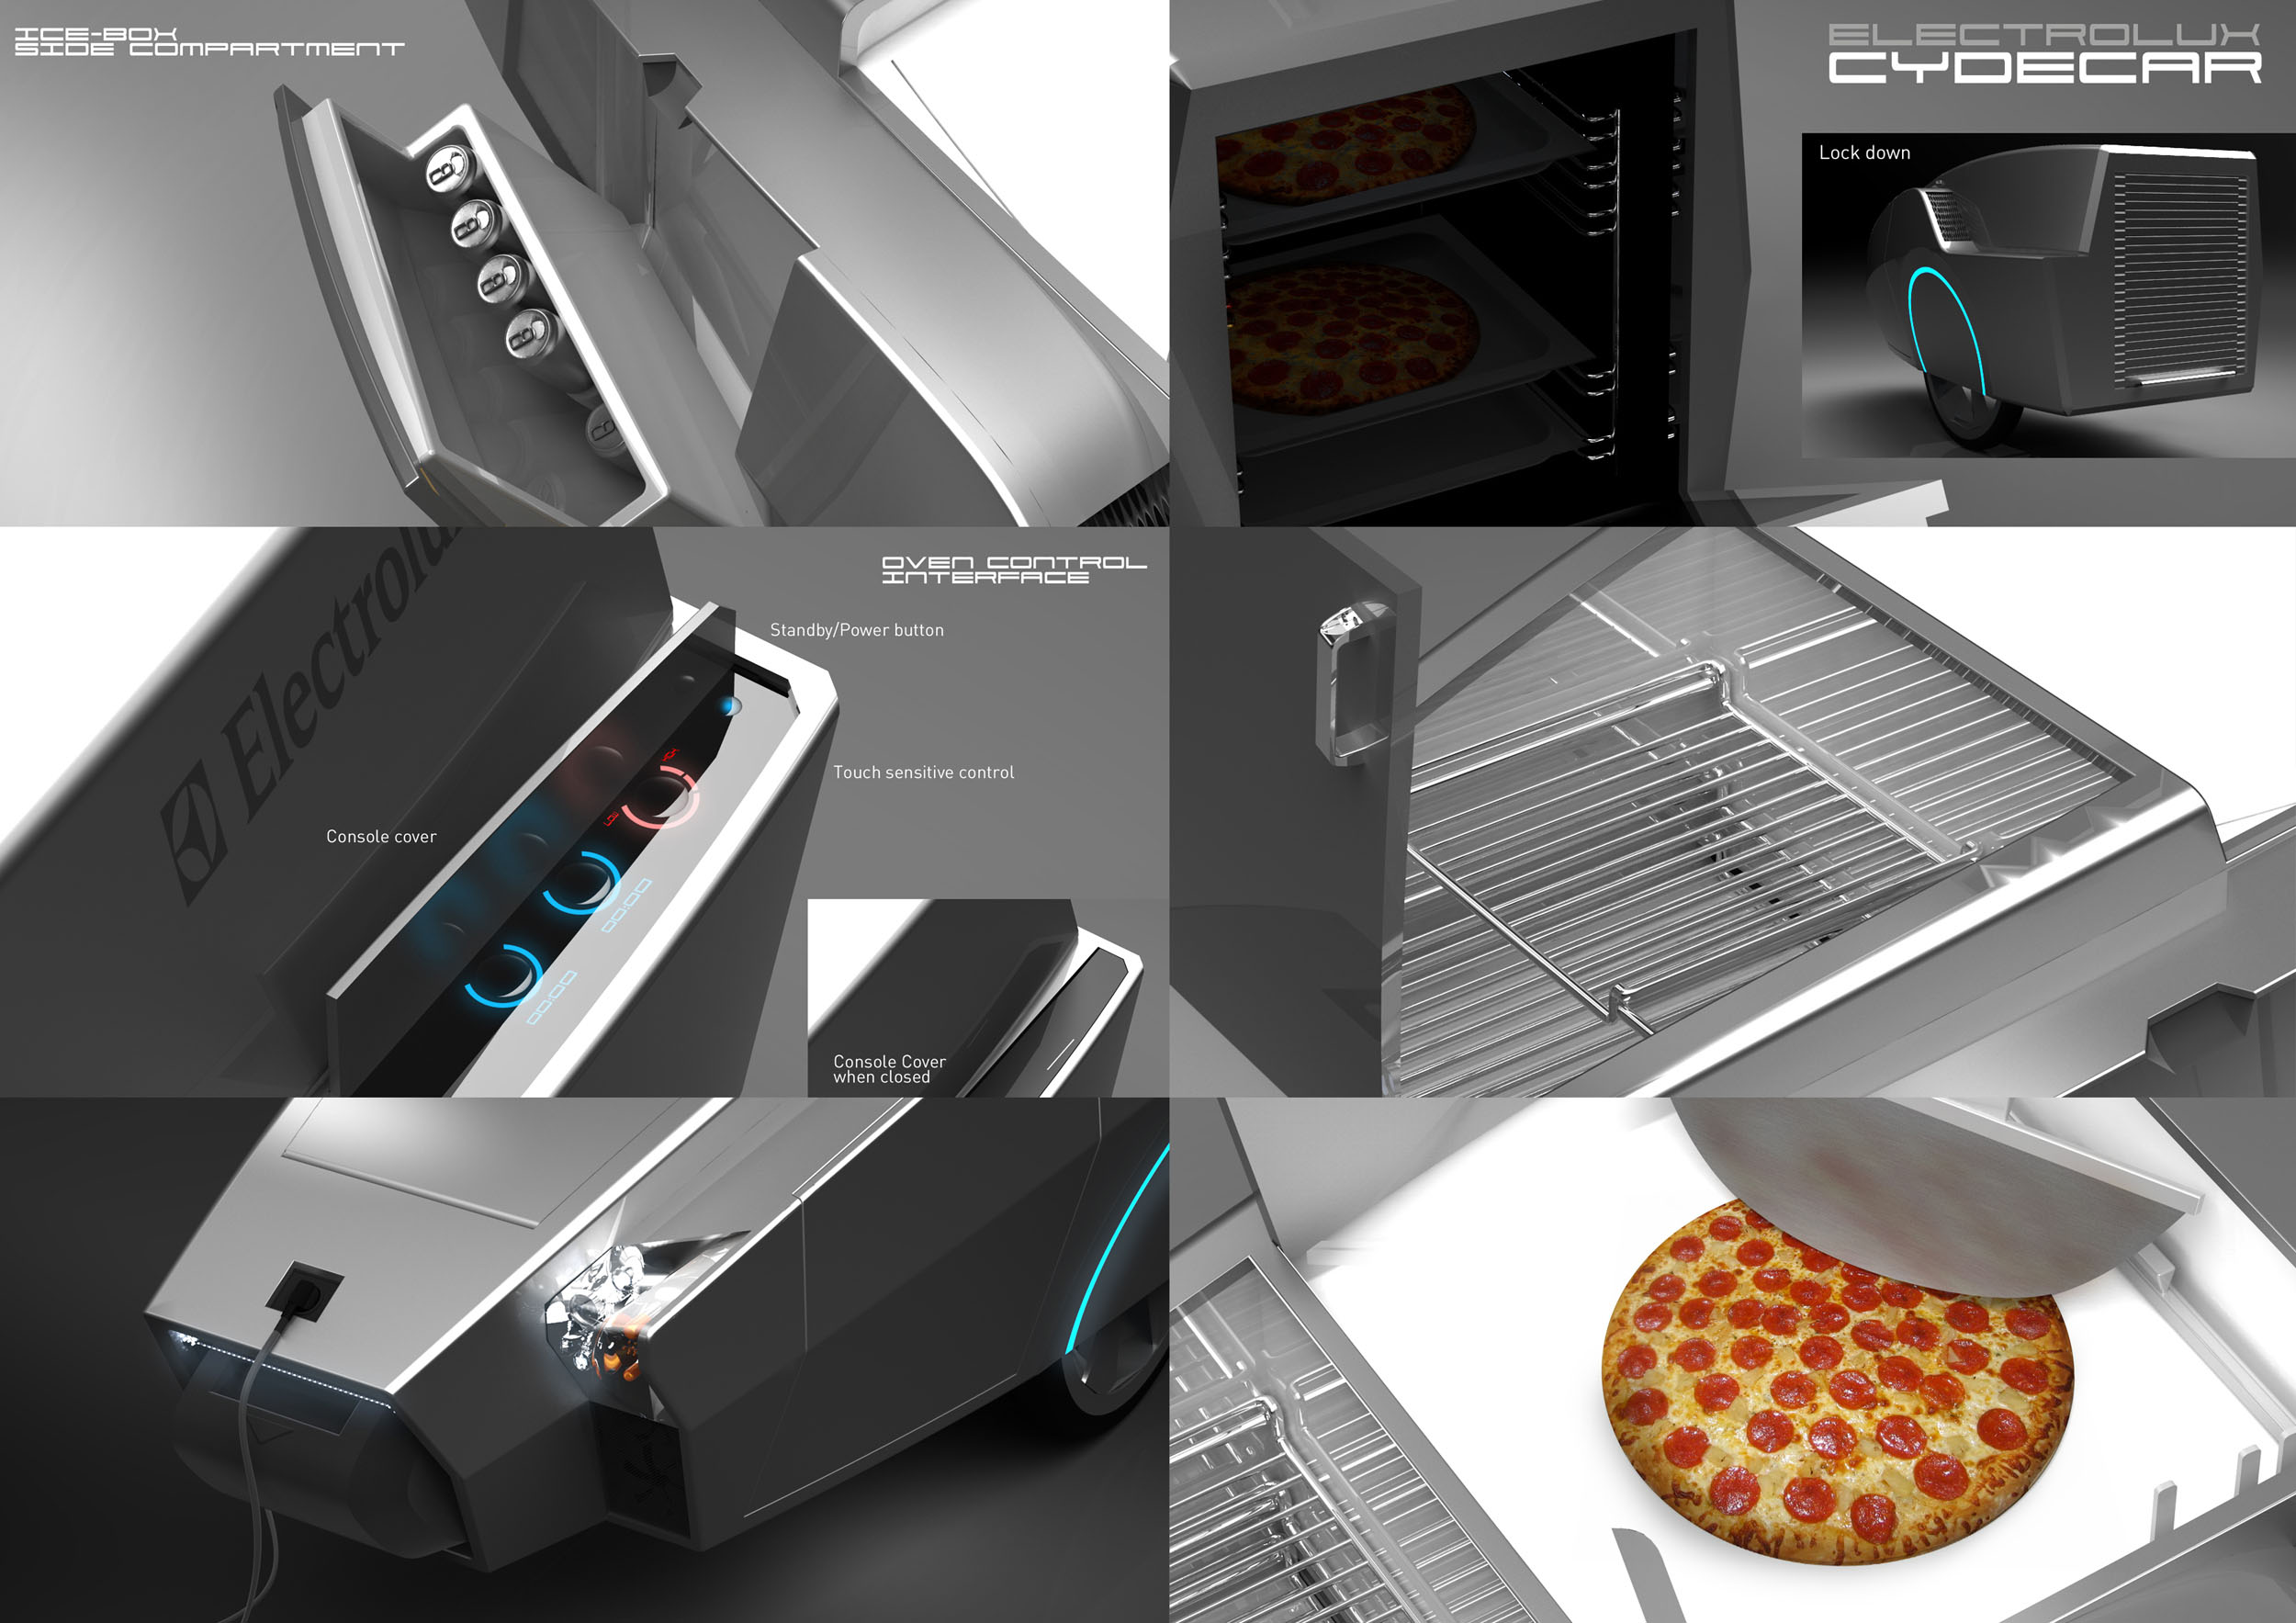 Pizzeria Pronto Stovetop Pizza Oven Cydecar Future Pizza Kiosk Delivers Your Pizza To Your